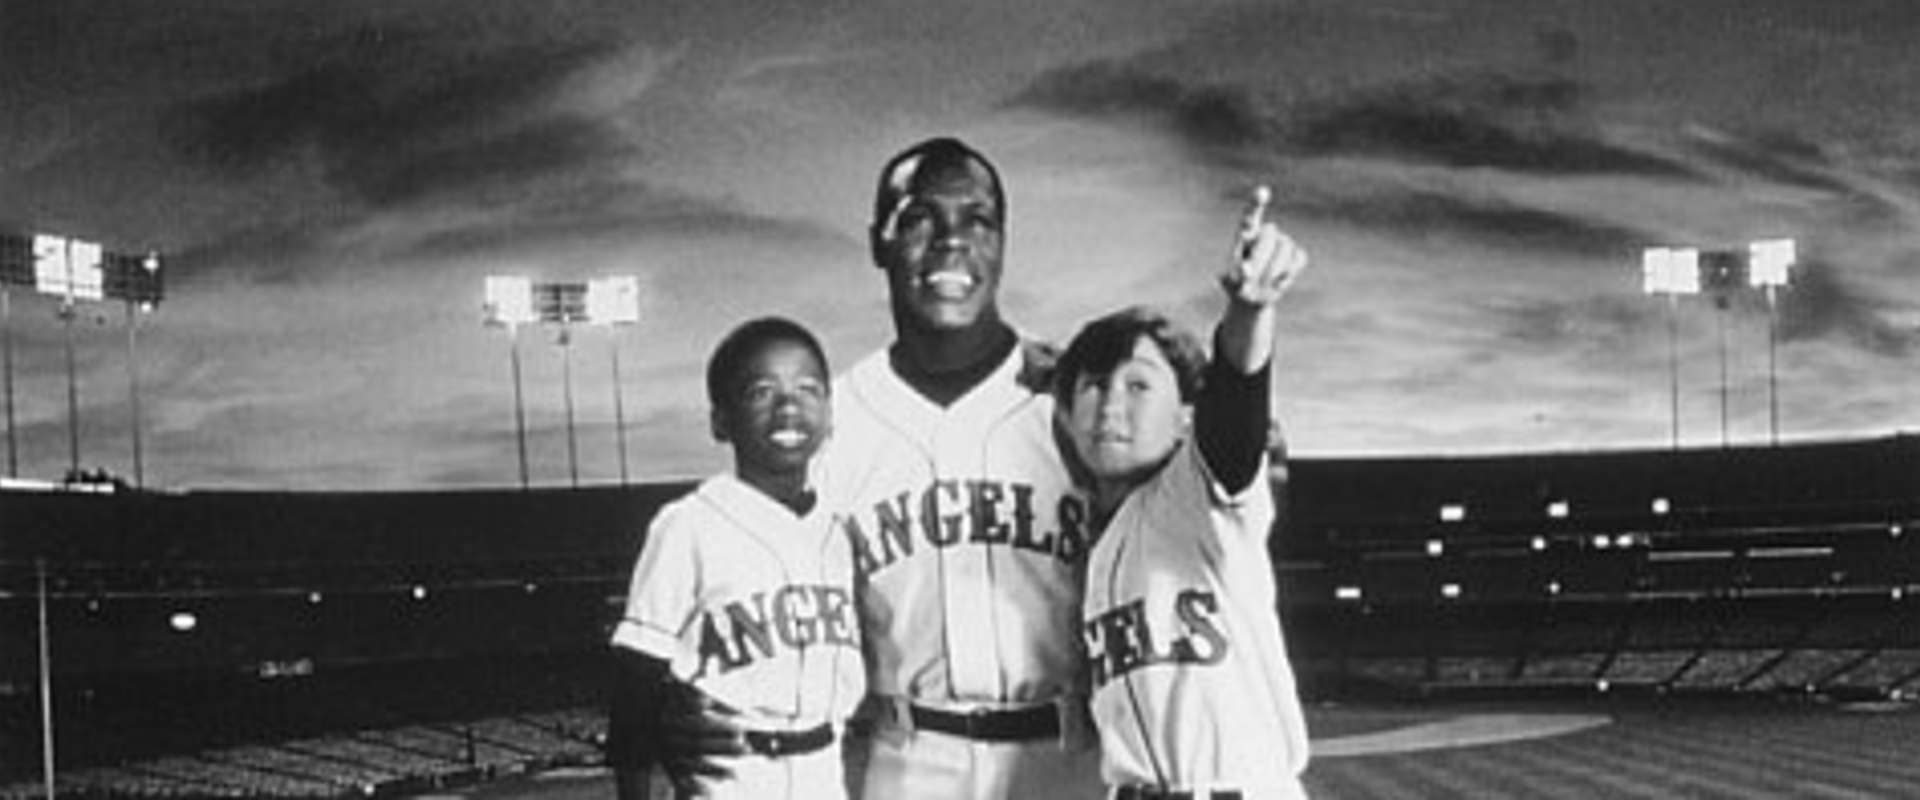 Angels in the Outfield background 1